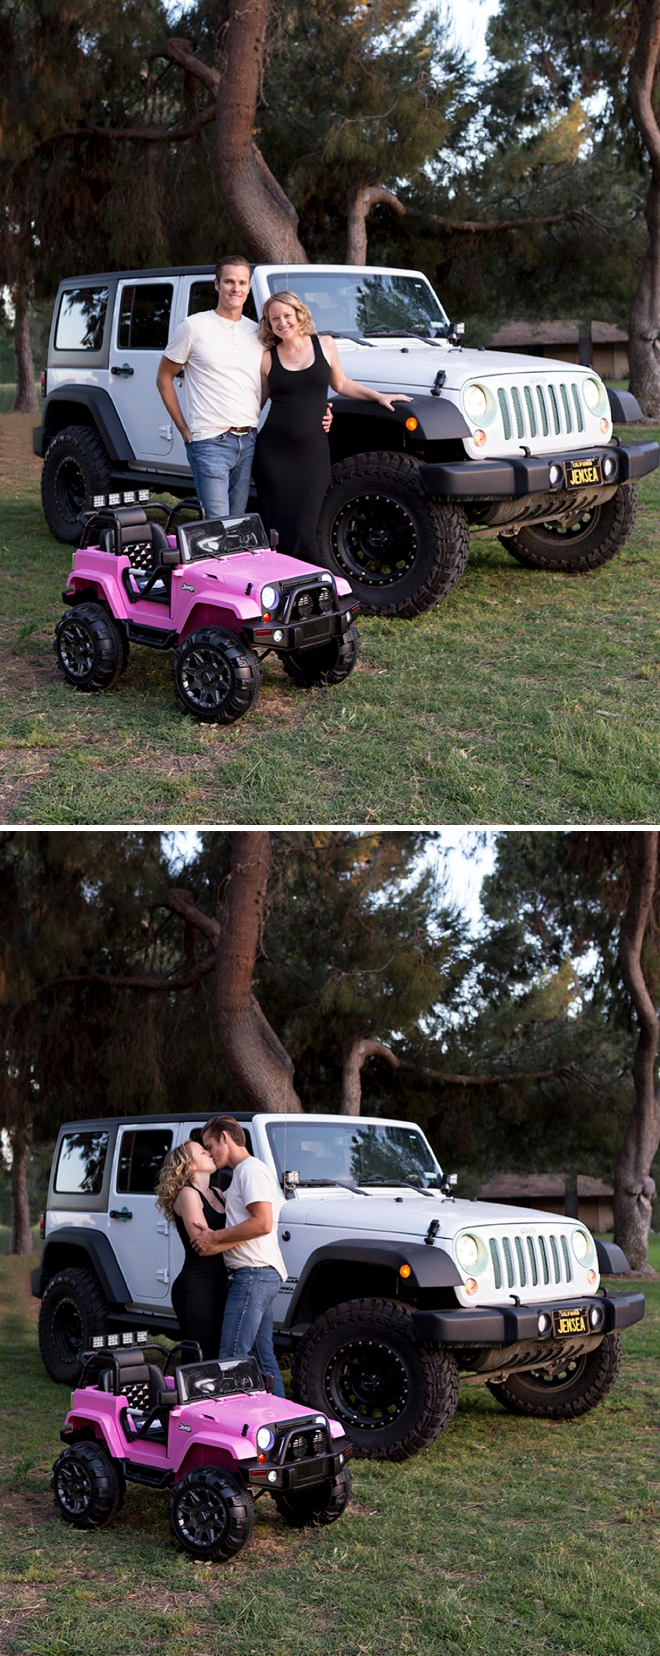 Mini Jeep vs. Real Jeep Pregnancy Announcement